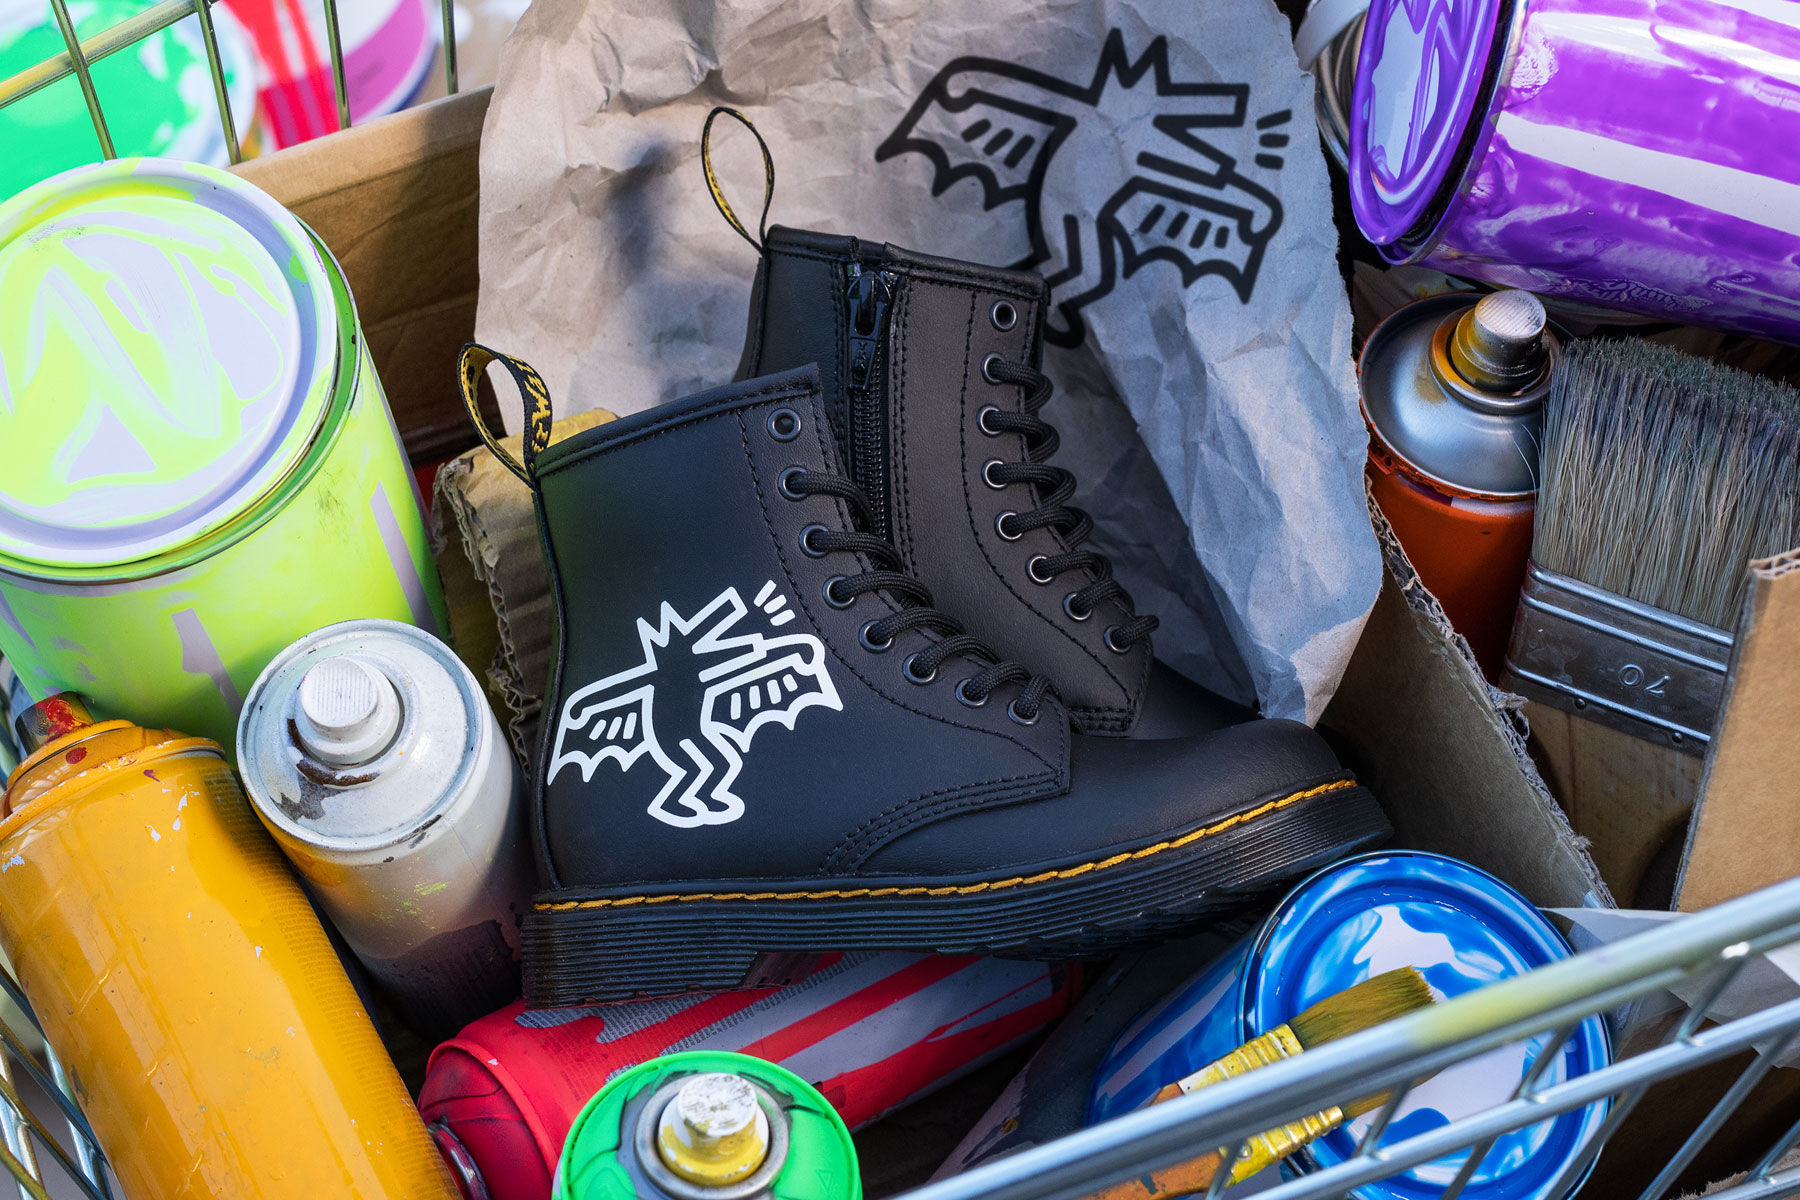 Dr. Martens x Keith Haring collection